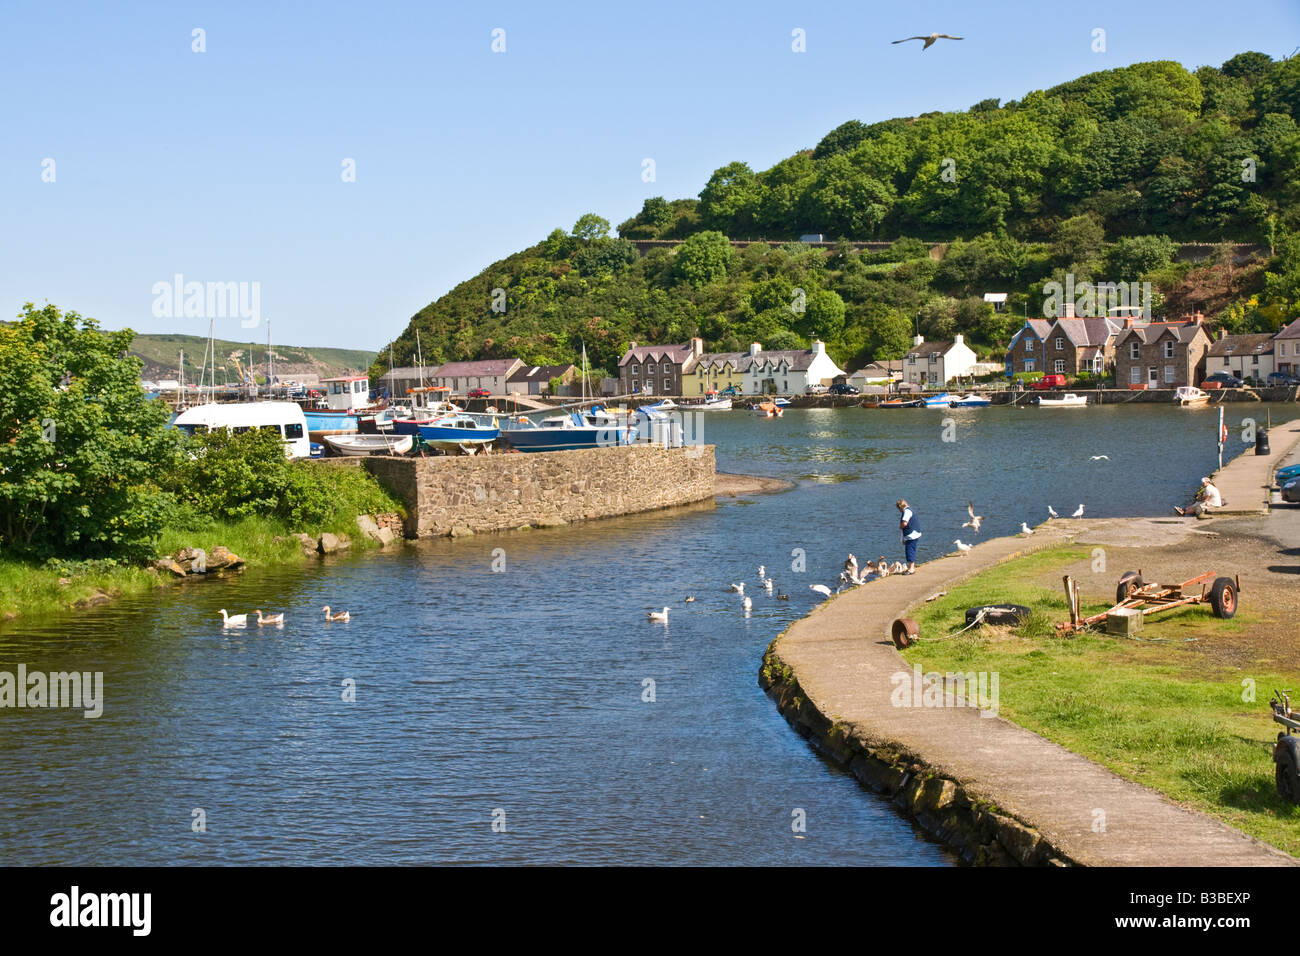 Feeding the ducks at the Harbour, Lower Fishguard, Pembrokeshire - Stock Image